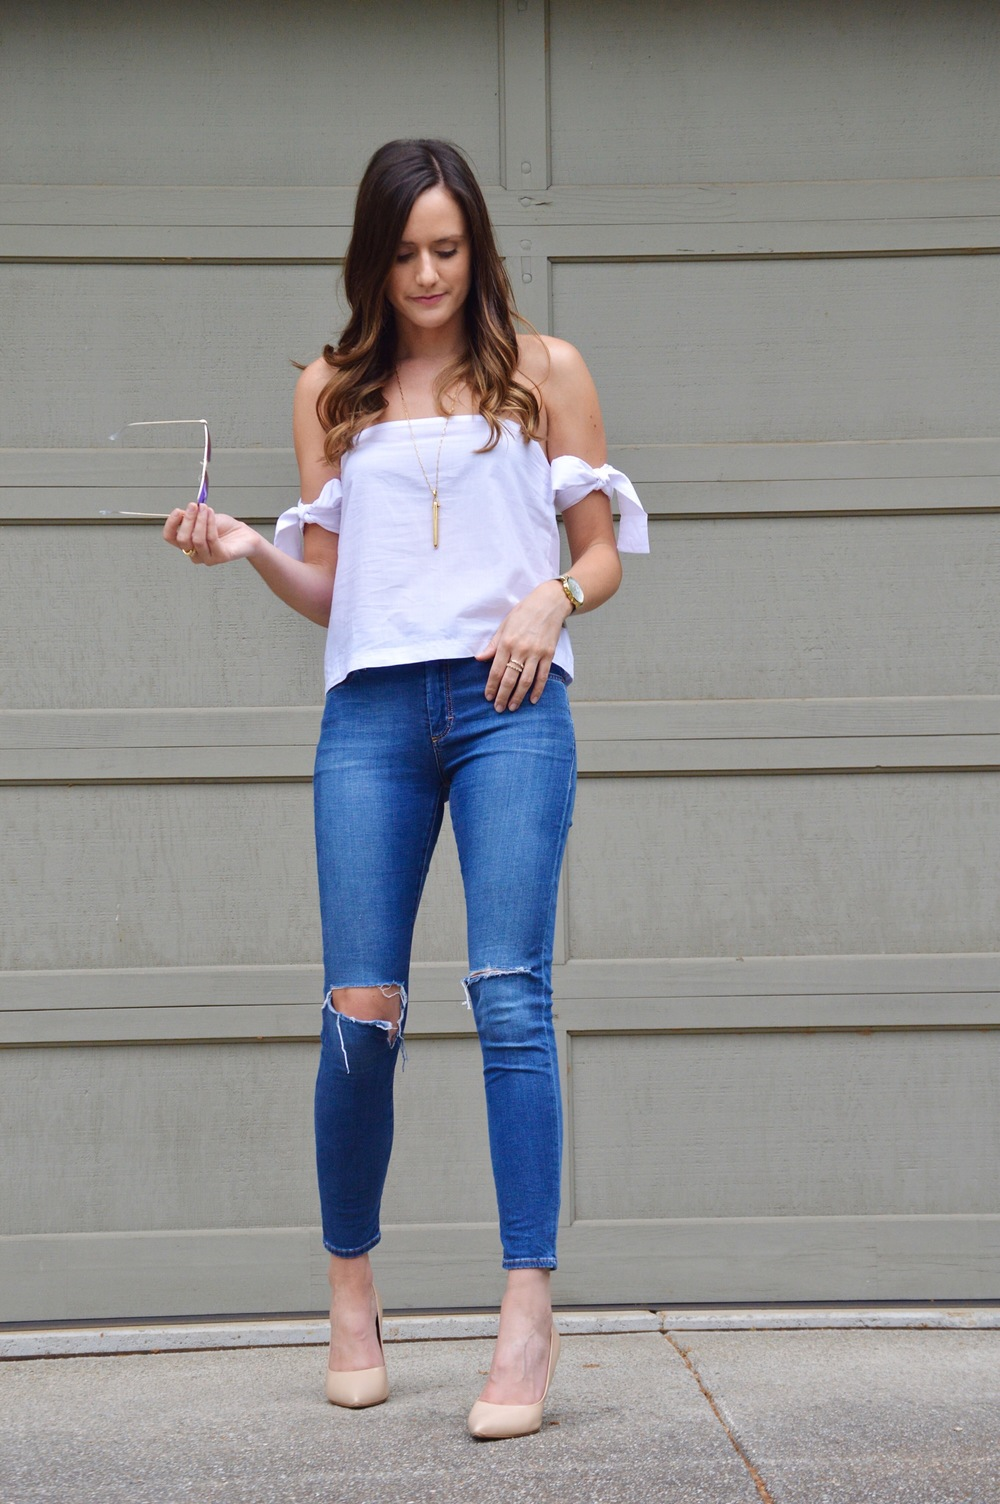 Shop the Look Below. Top: c/o  SheIn . Jeans:  Nordstrom . Shoes:  Steve Madden . Necklace:  Stella & Dot . Sunglasses:  Ray-Ban . Watch:  ILY Couture . Rings: c/o  BaubleBar